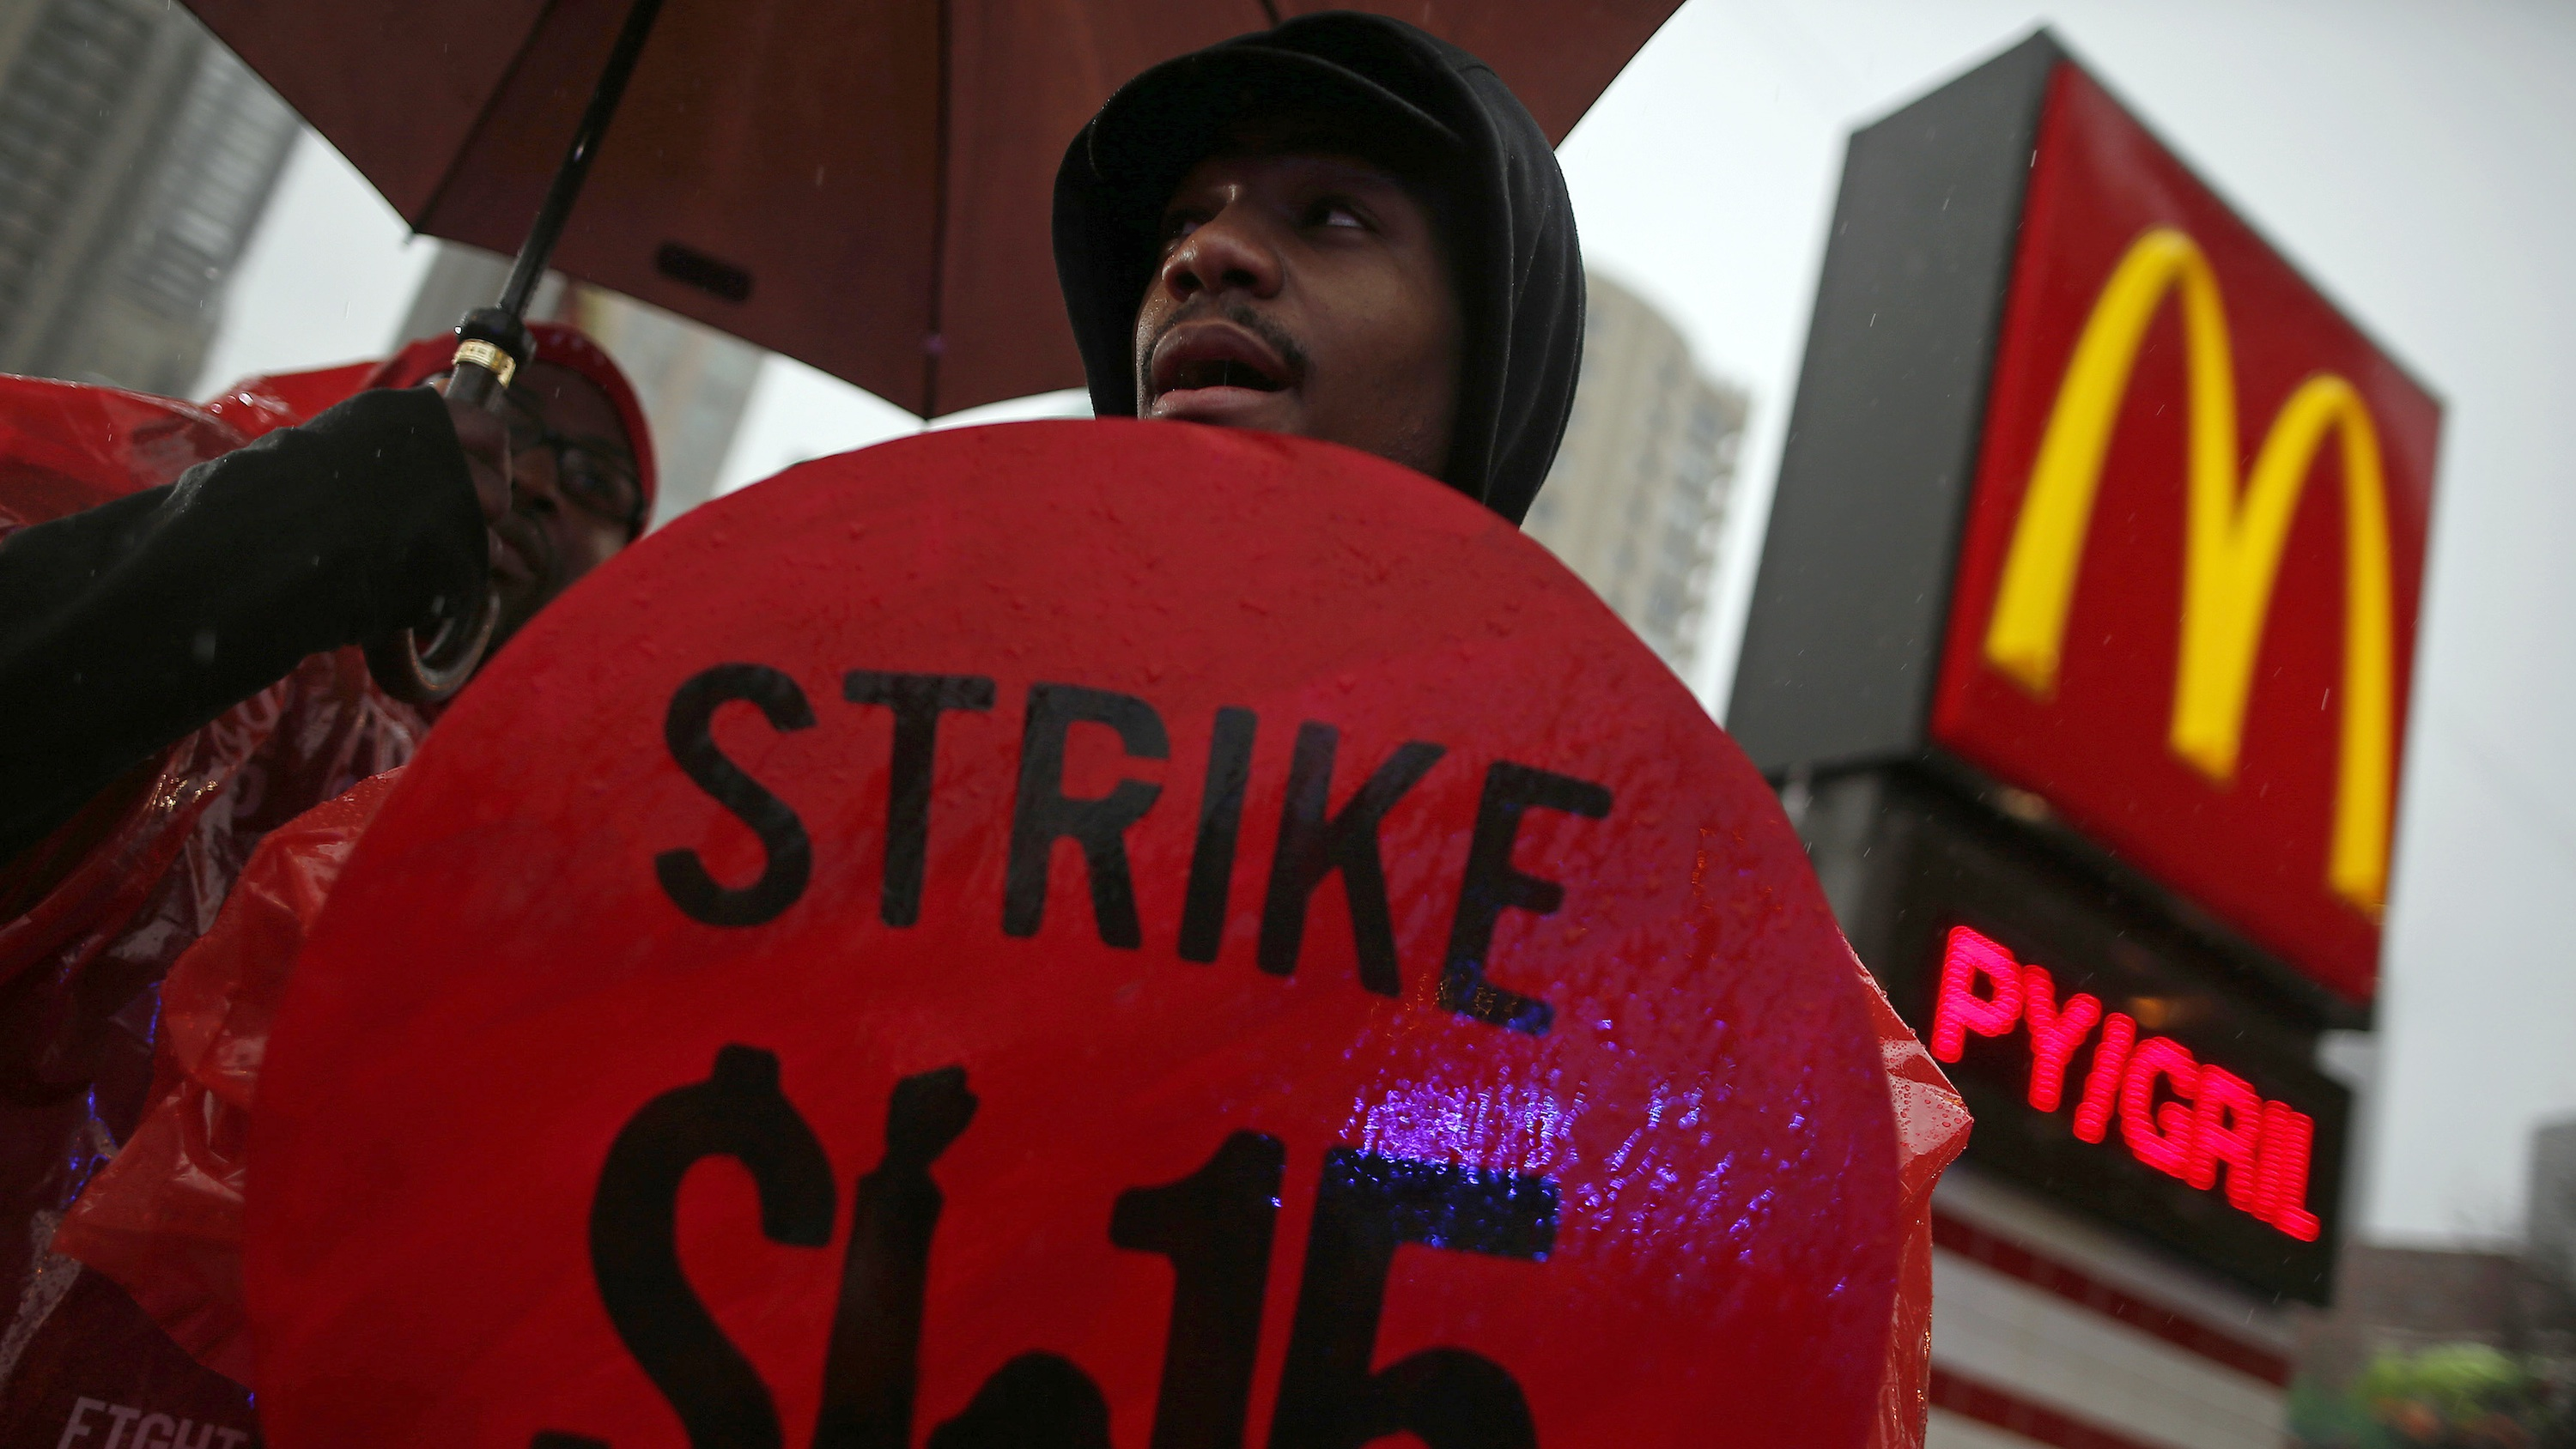 Demonstrators protest for higher wages in front of a McDonald's restaurant in Chicago.